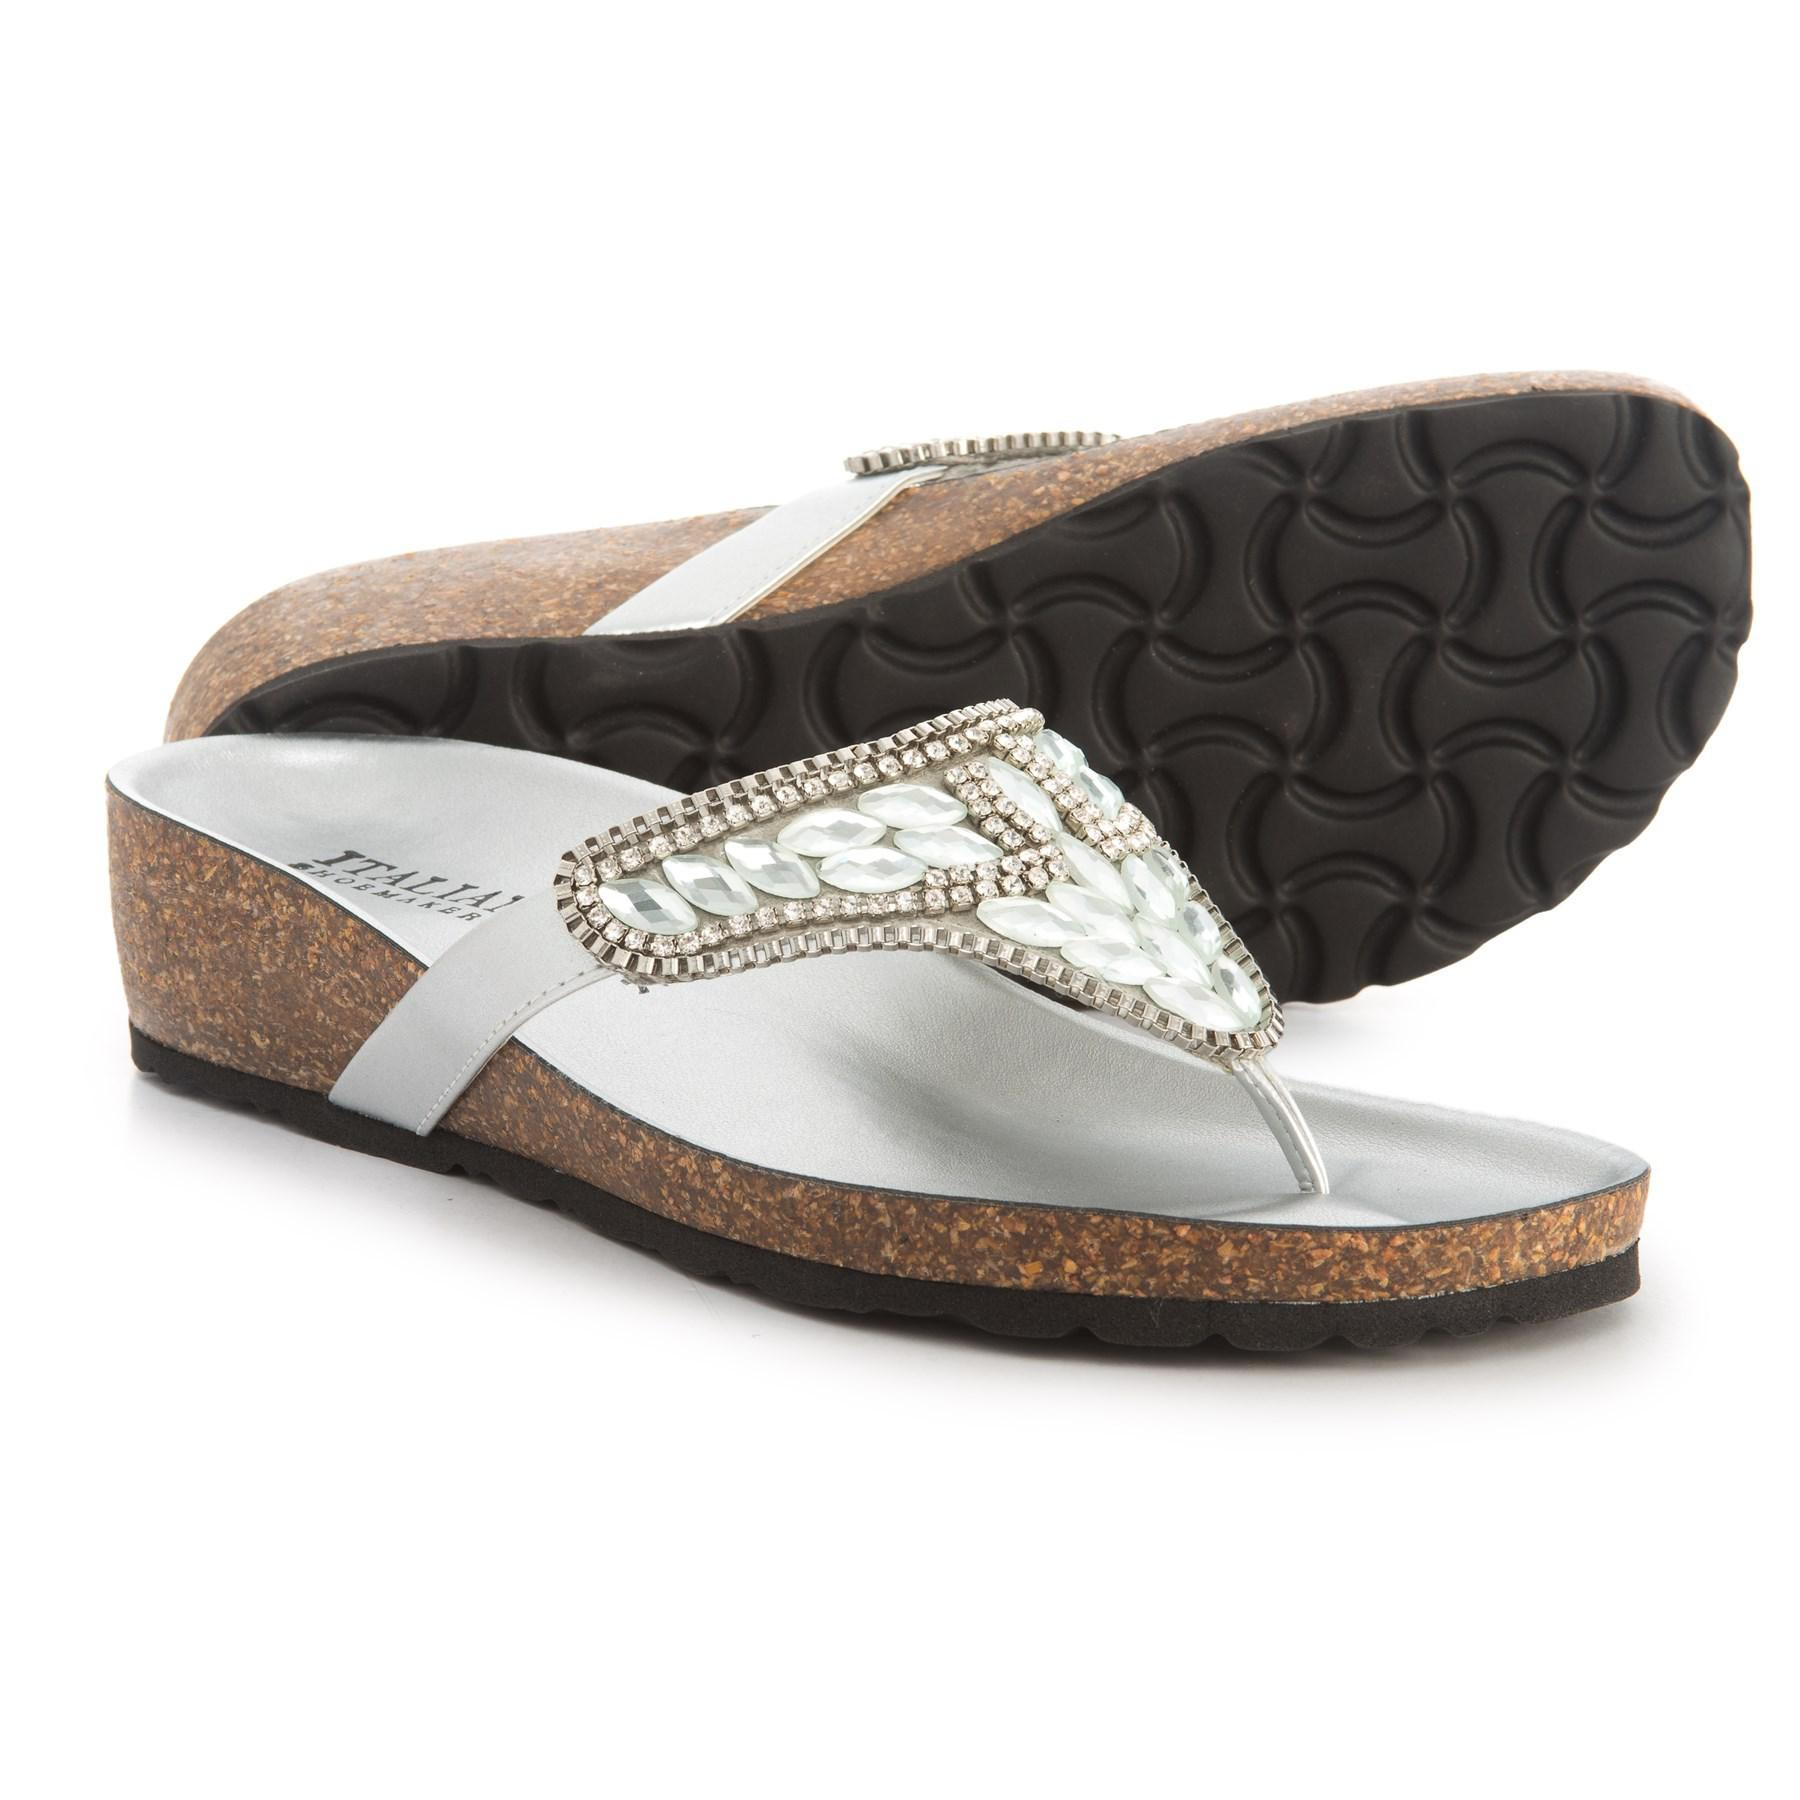 1d92b3ee1135 Lyst - Italian Shoemakers Made In Italy Beretie Jeweled Sandals (for ...